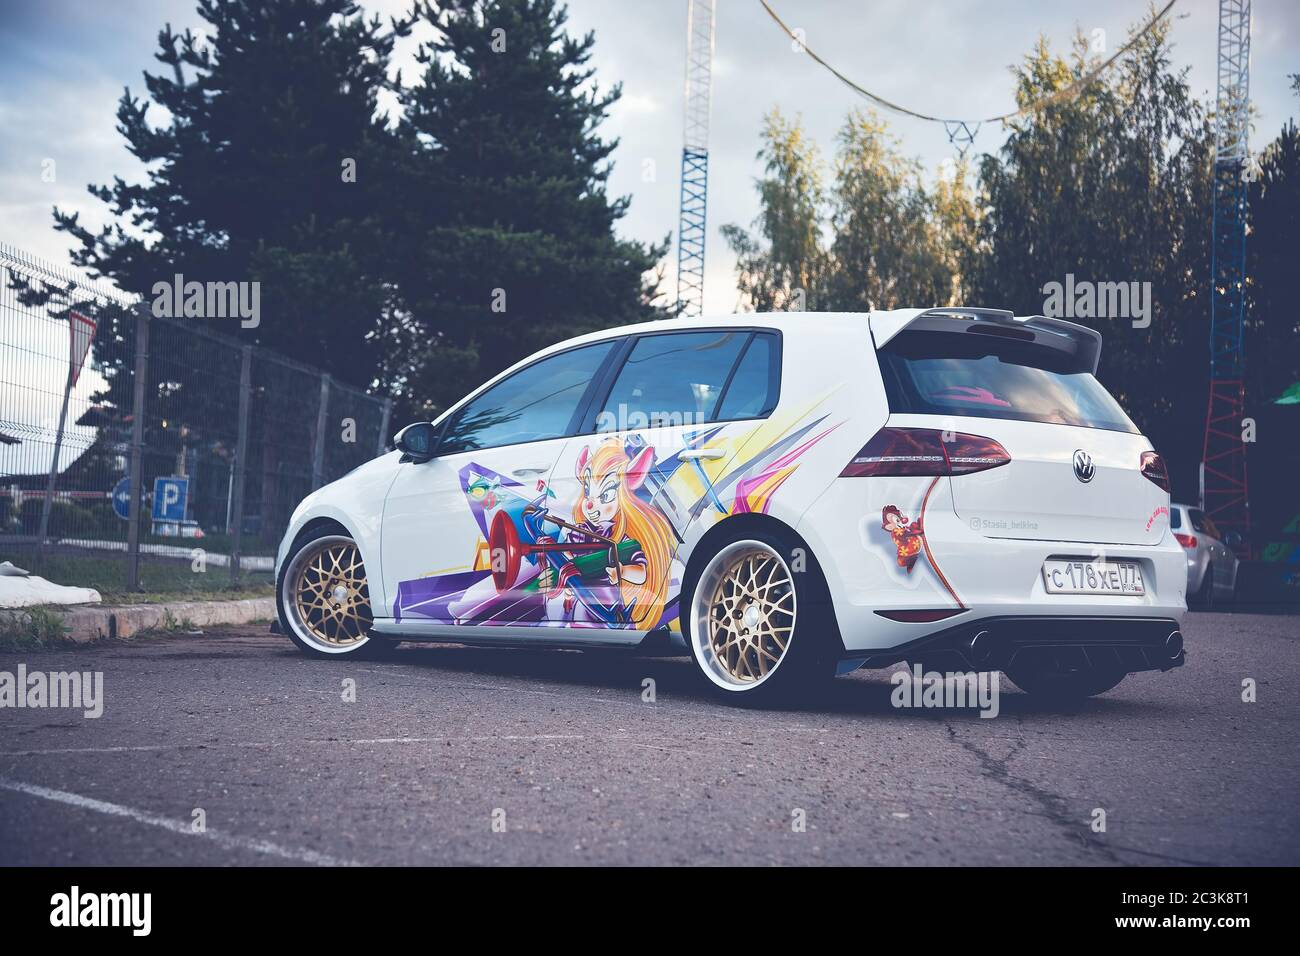 Page 3 Vinyl Wrap Car High Resolution Stock Photography And Images Alamy